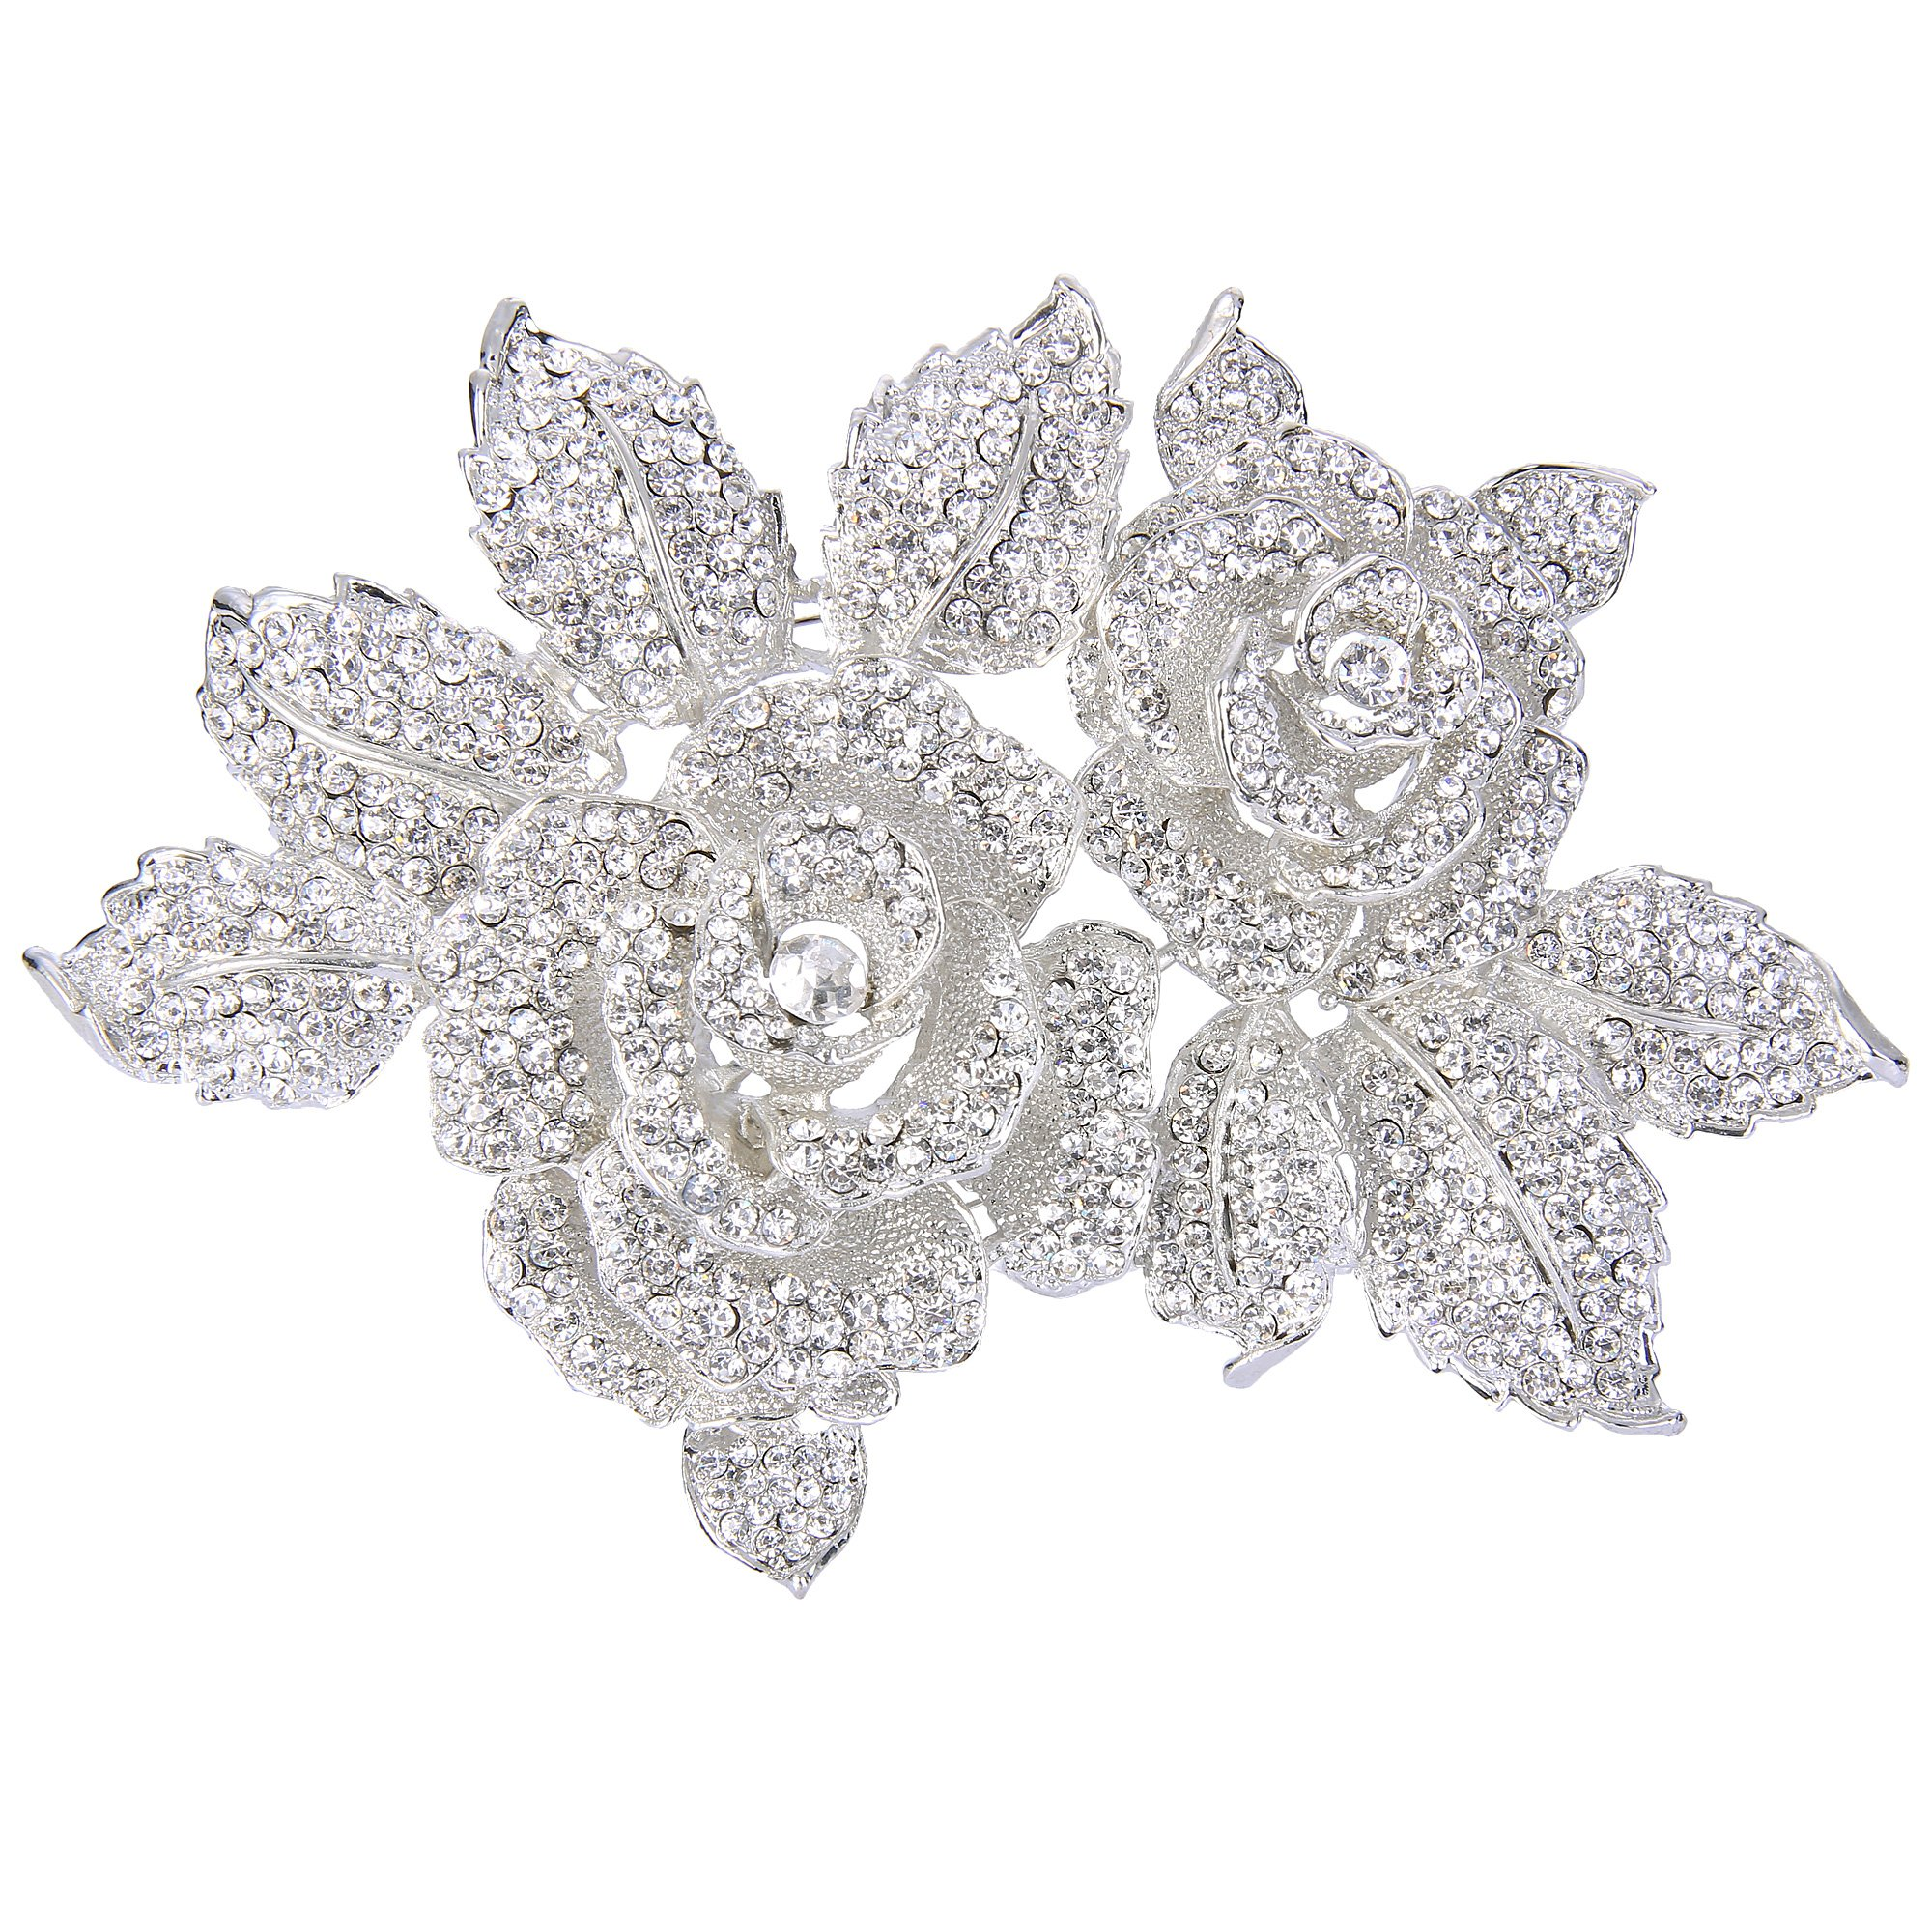 EVER FAITH Austrian Crystal 6 Inch Romantic Blooming Rose Flower Leaf Brooch Clear Silver-Tone